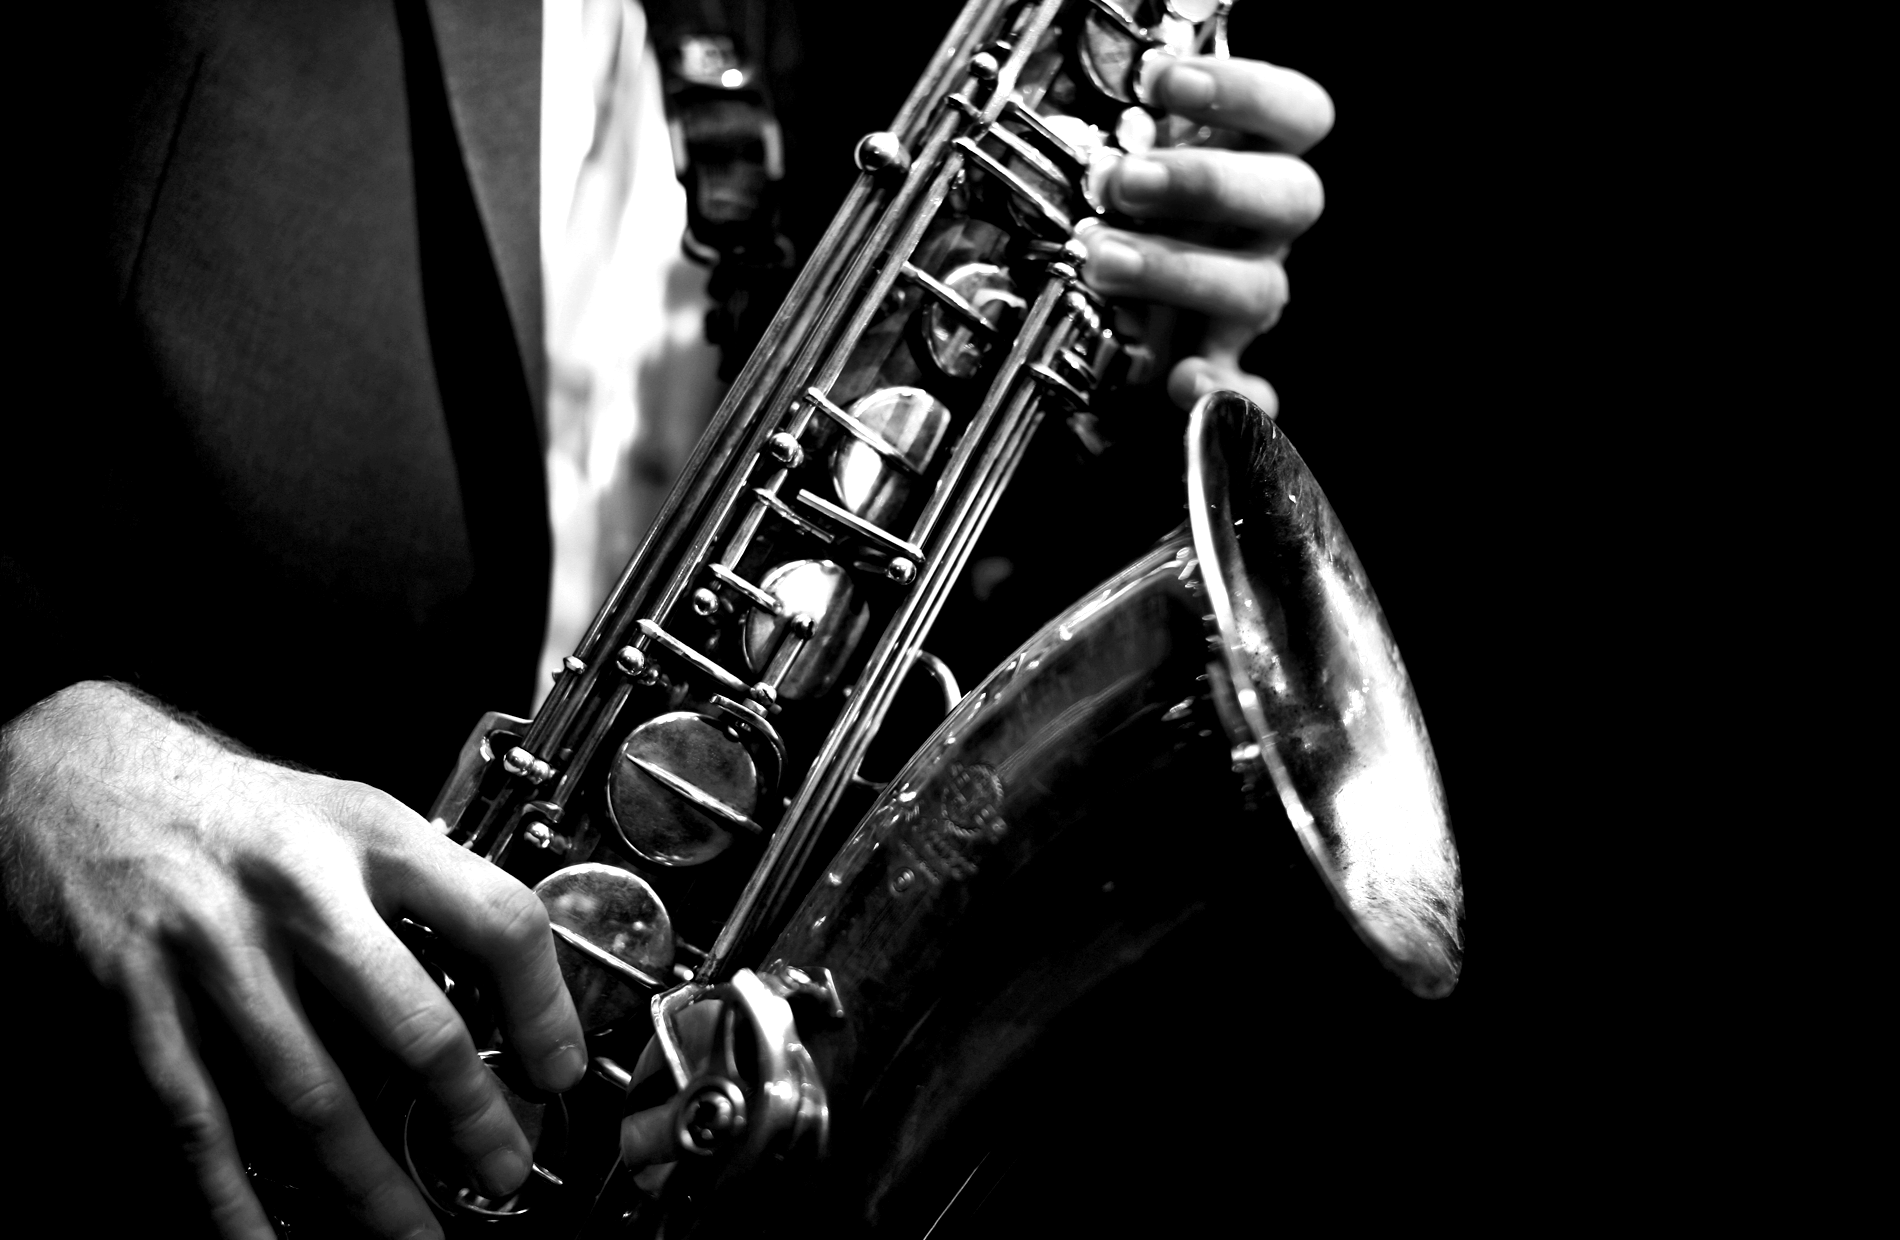 Balck sax hd nude photo